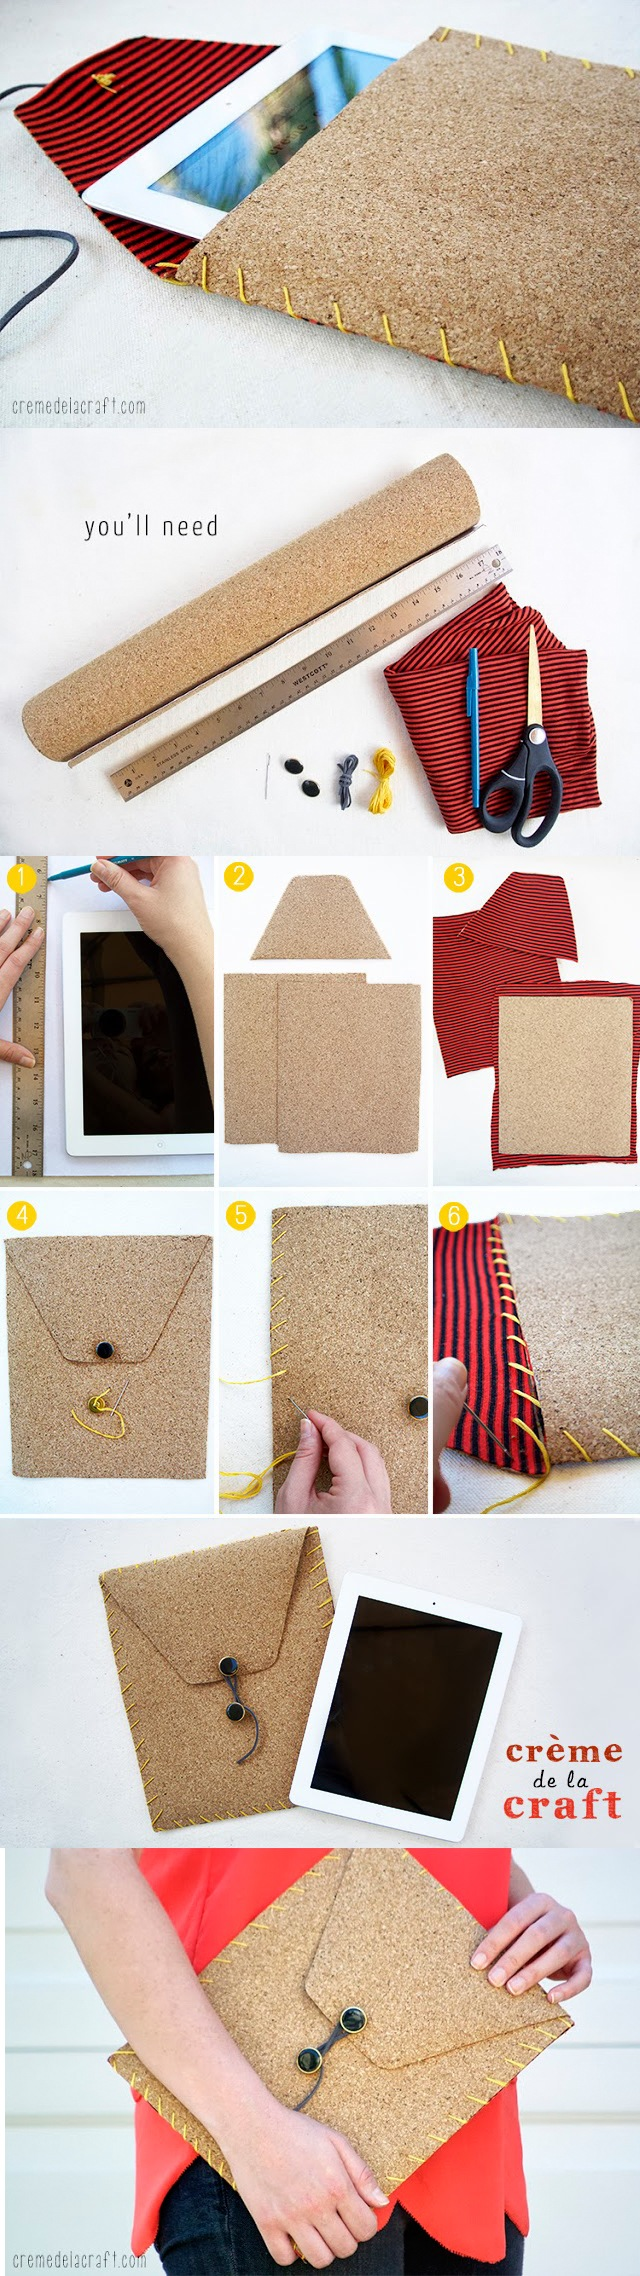 funda-iPad-DIY-muy-ingenioso-2